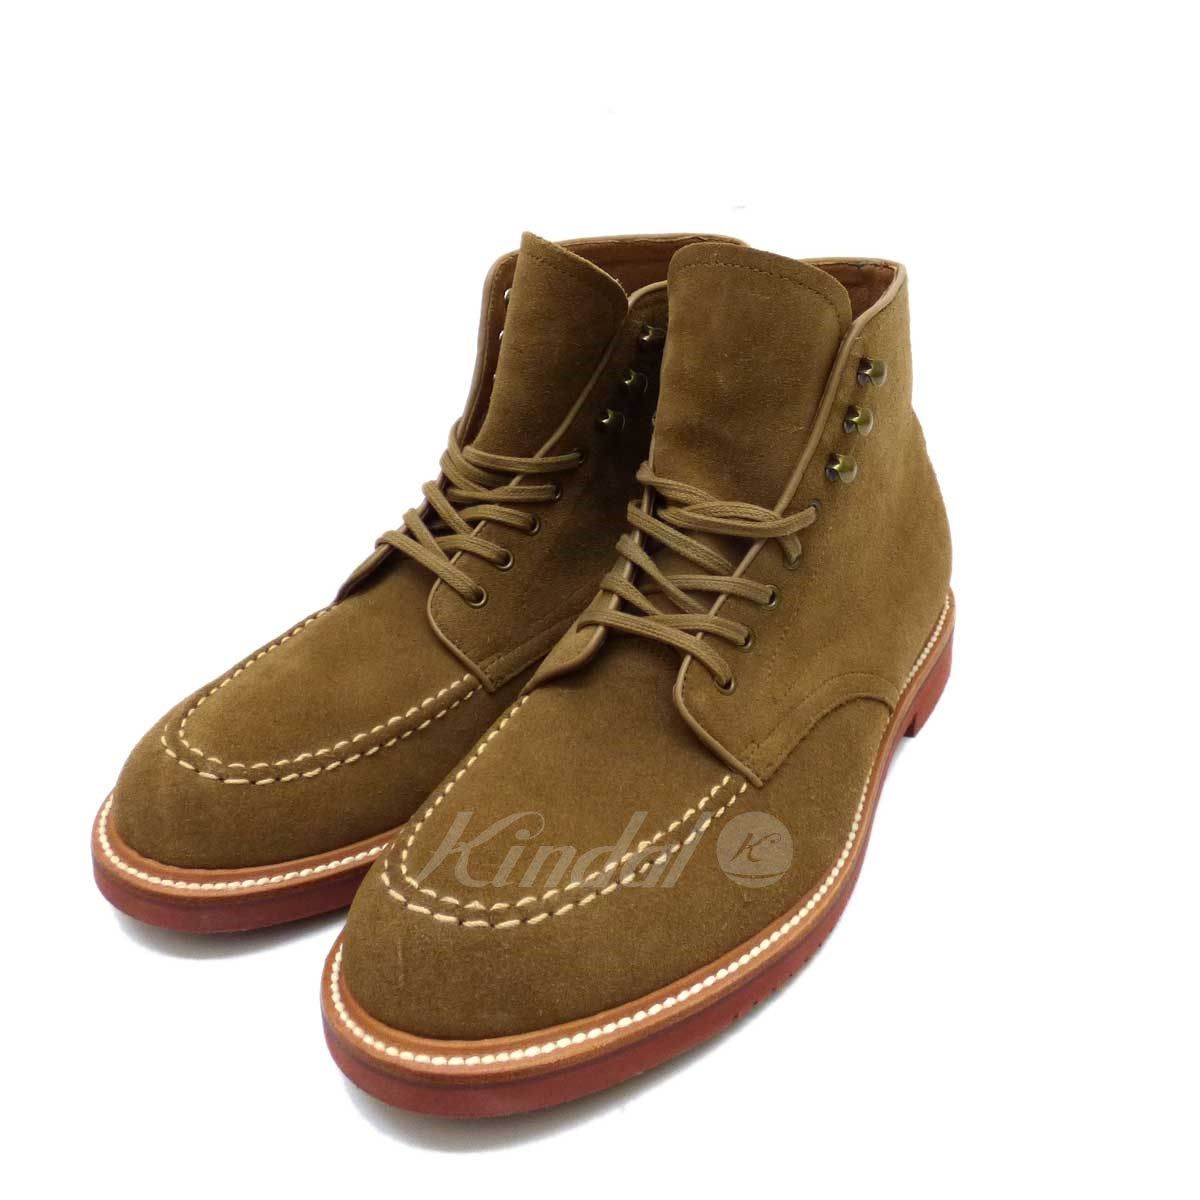 d8928eeff0a J CREW Kenton suede pacer boots race up boots